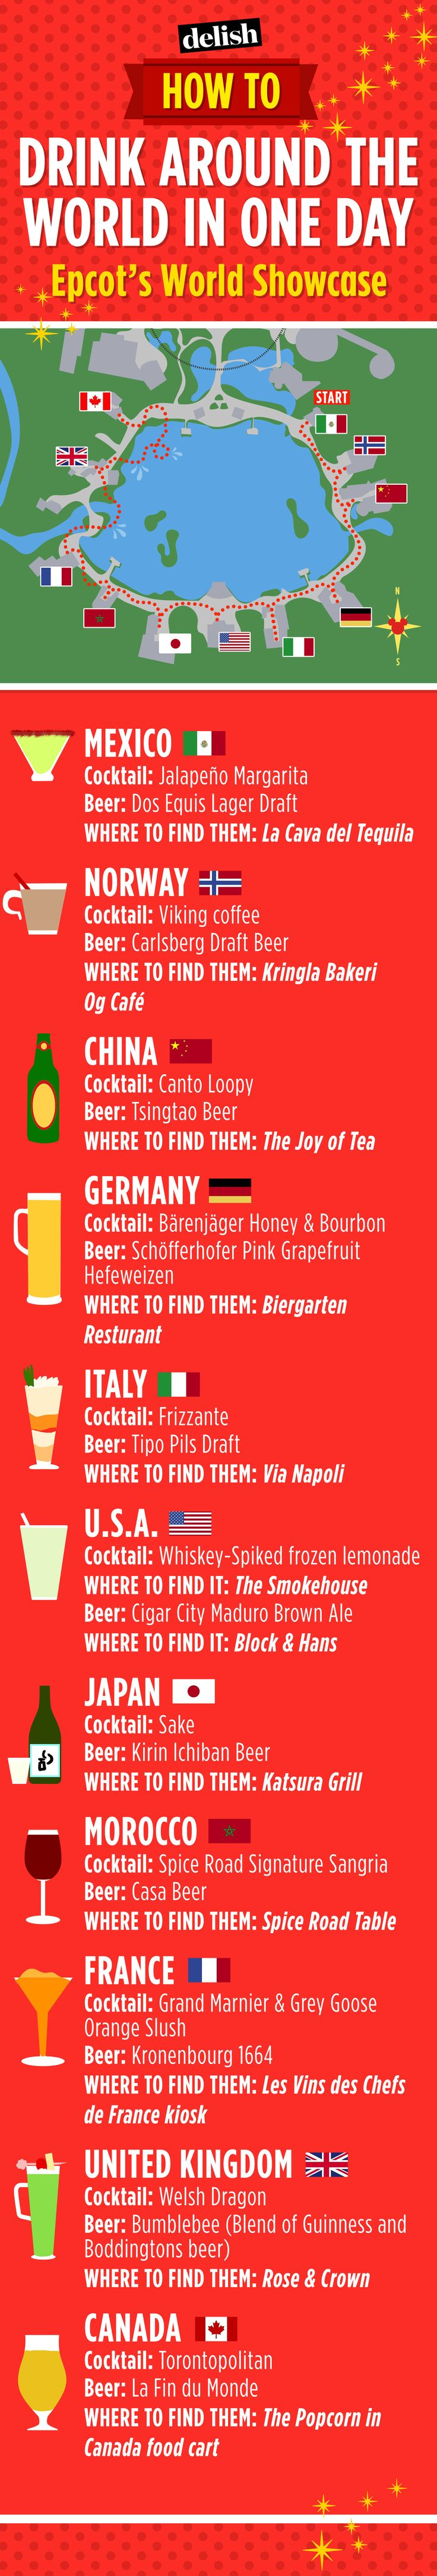 Here's Your Ultimate Guide To Drinking Around the World At Epcot - Delish.com